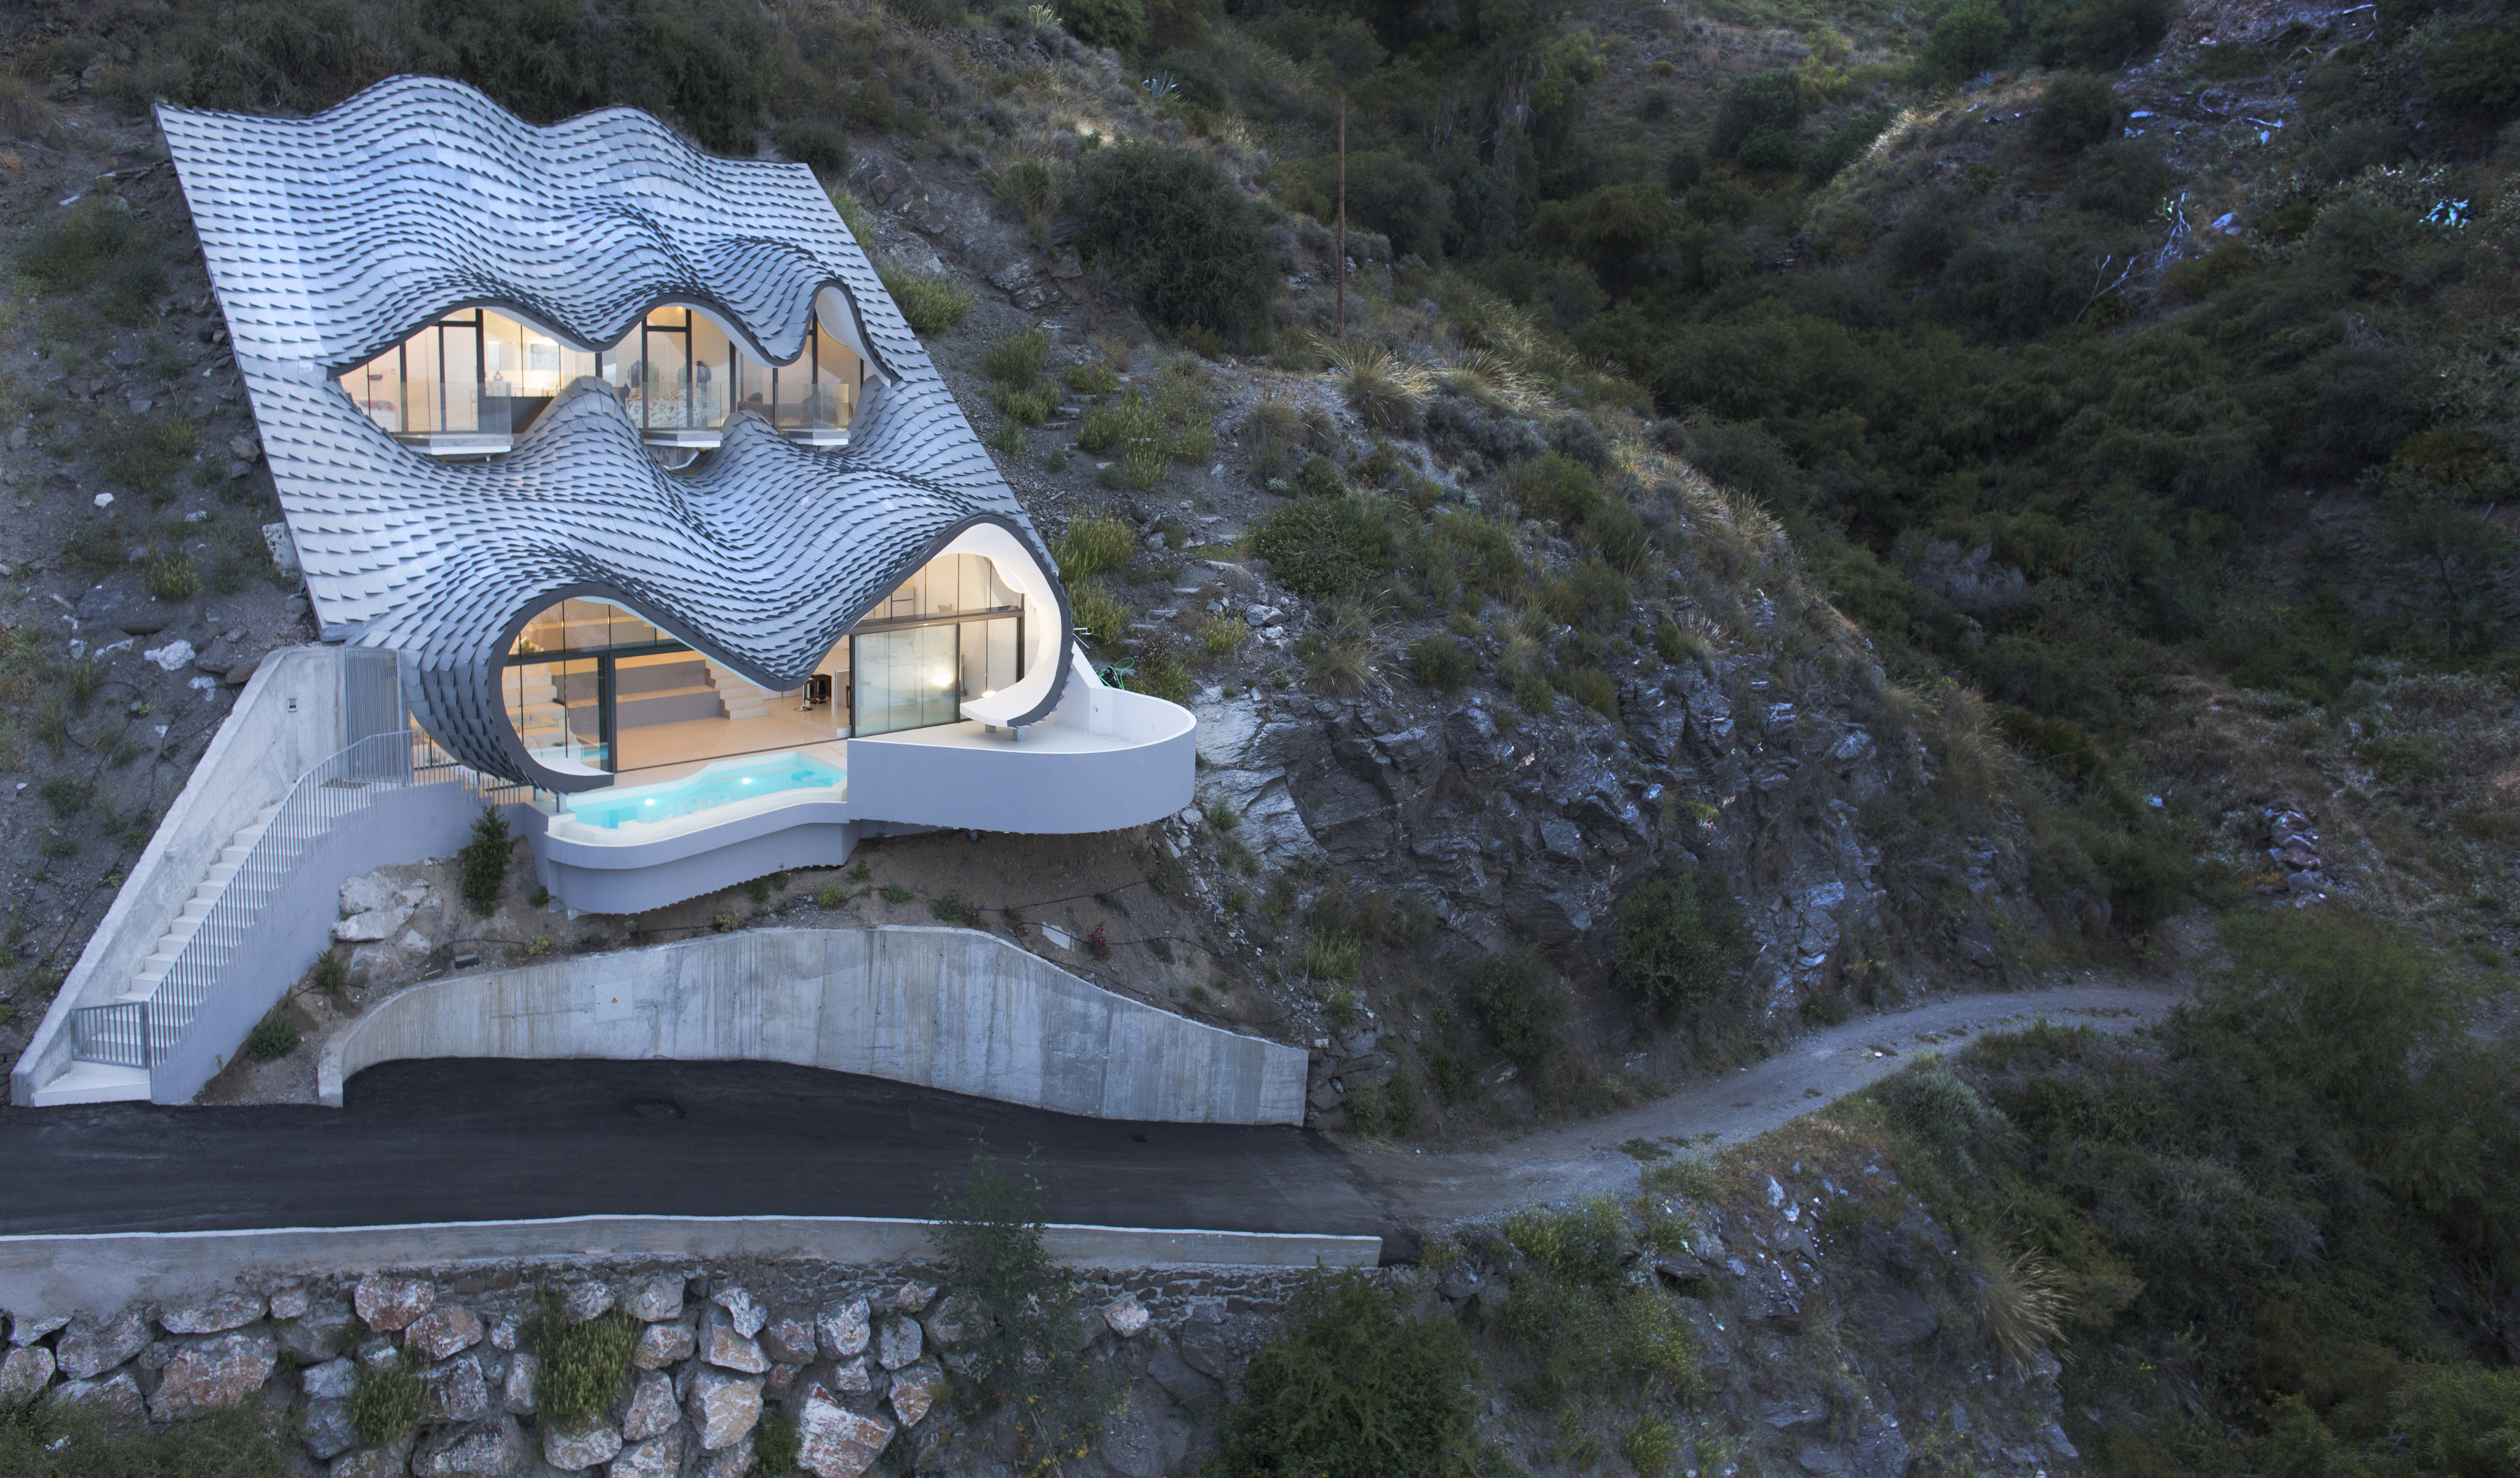 Spanish home embedded in hillside.